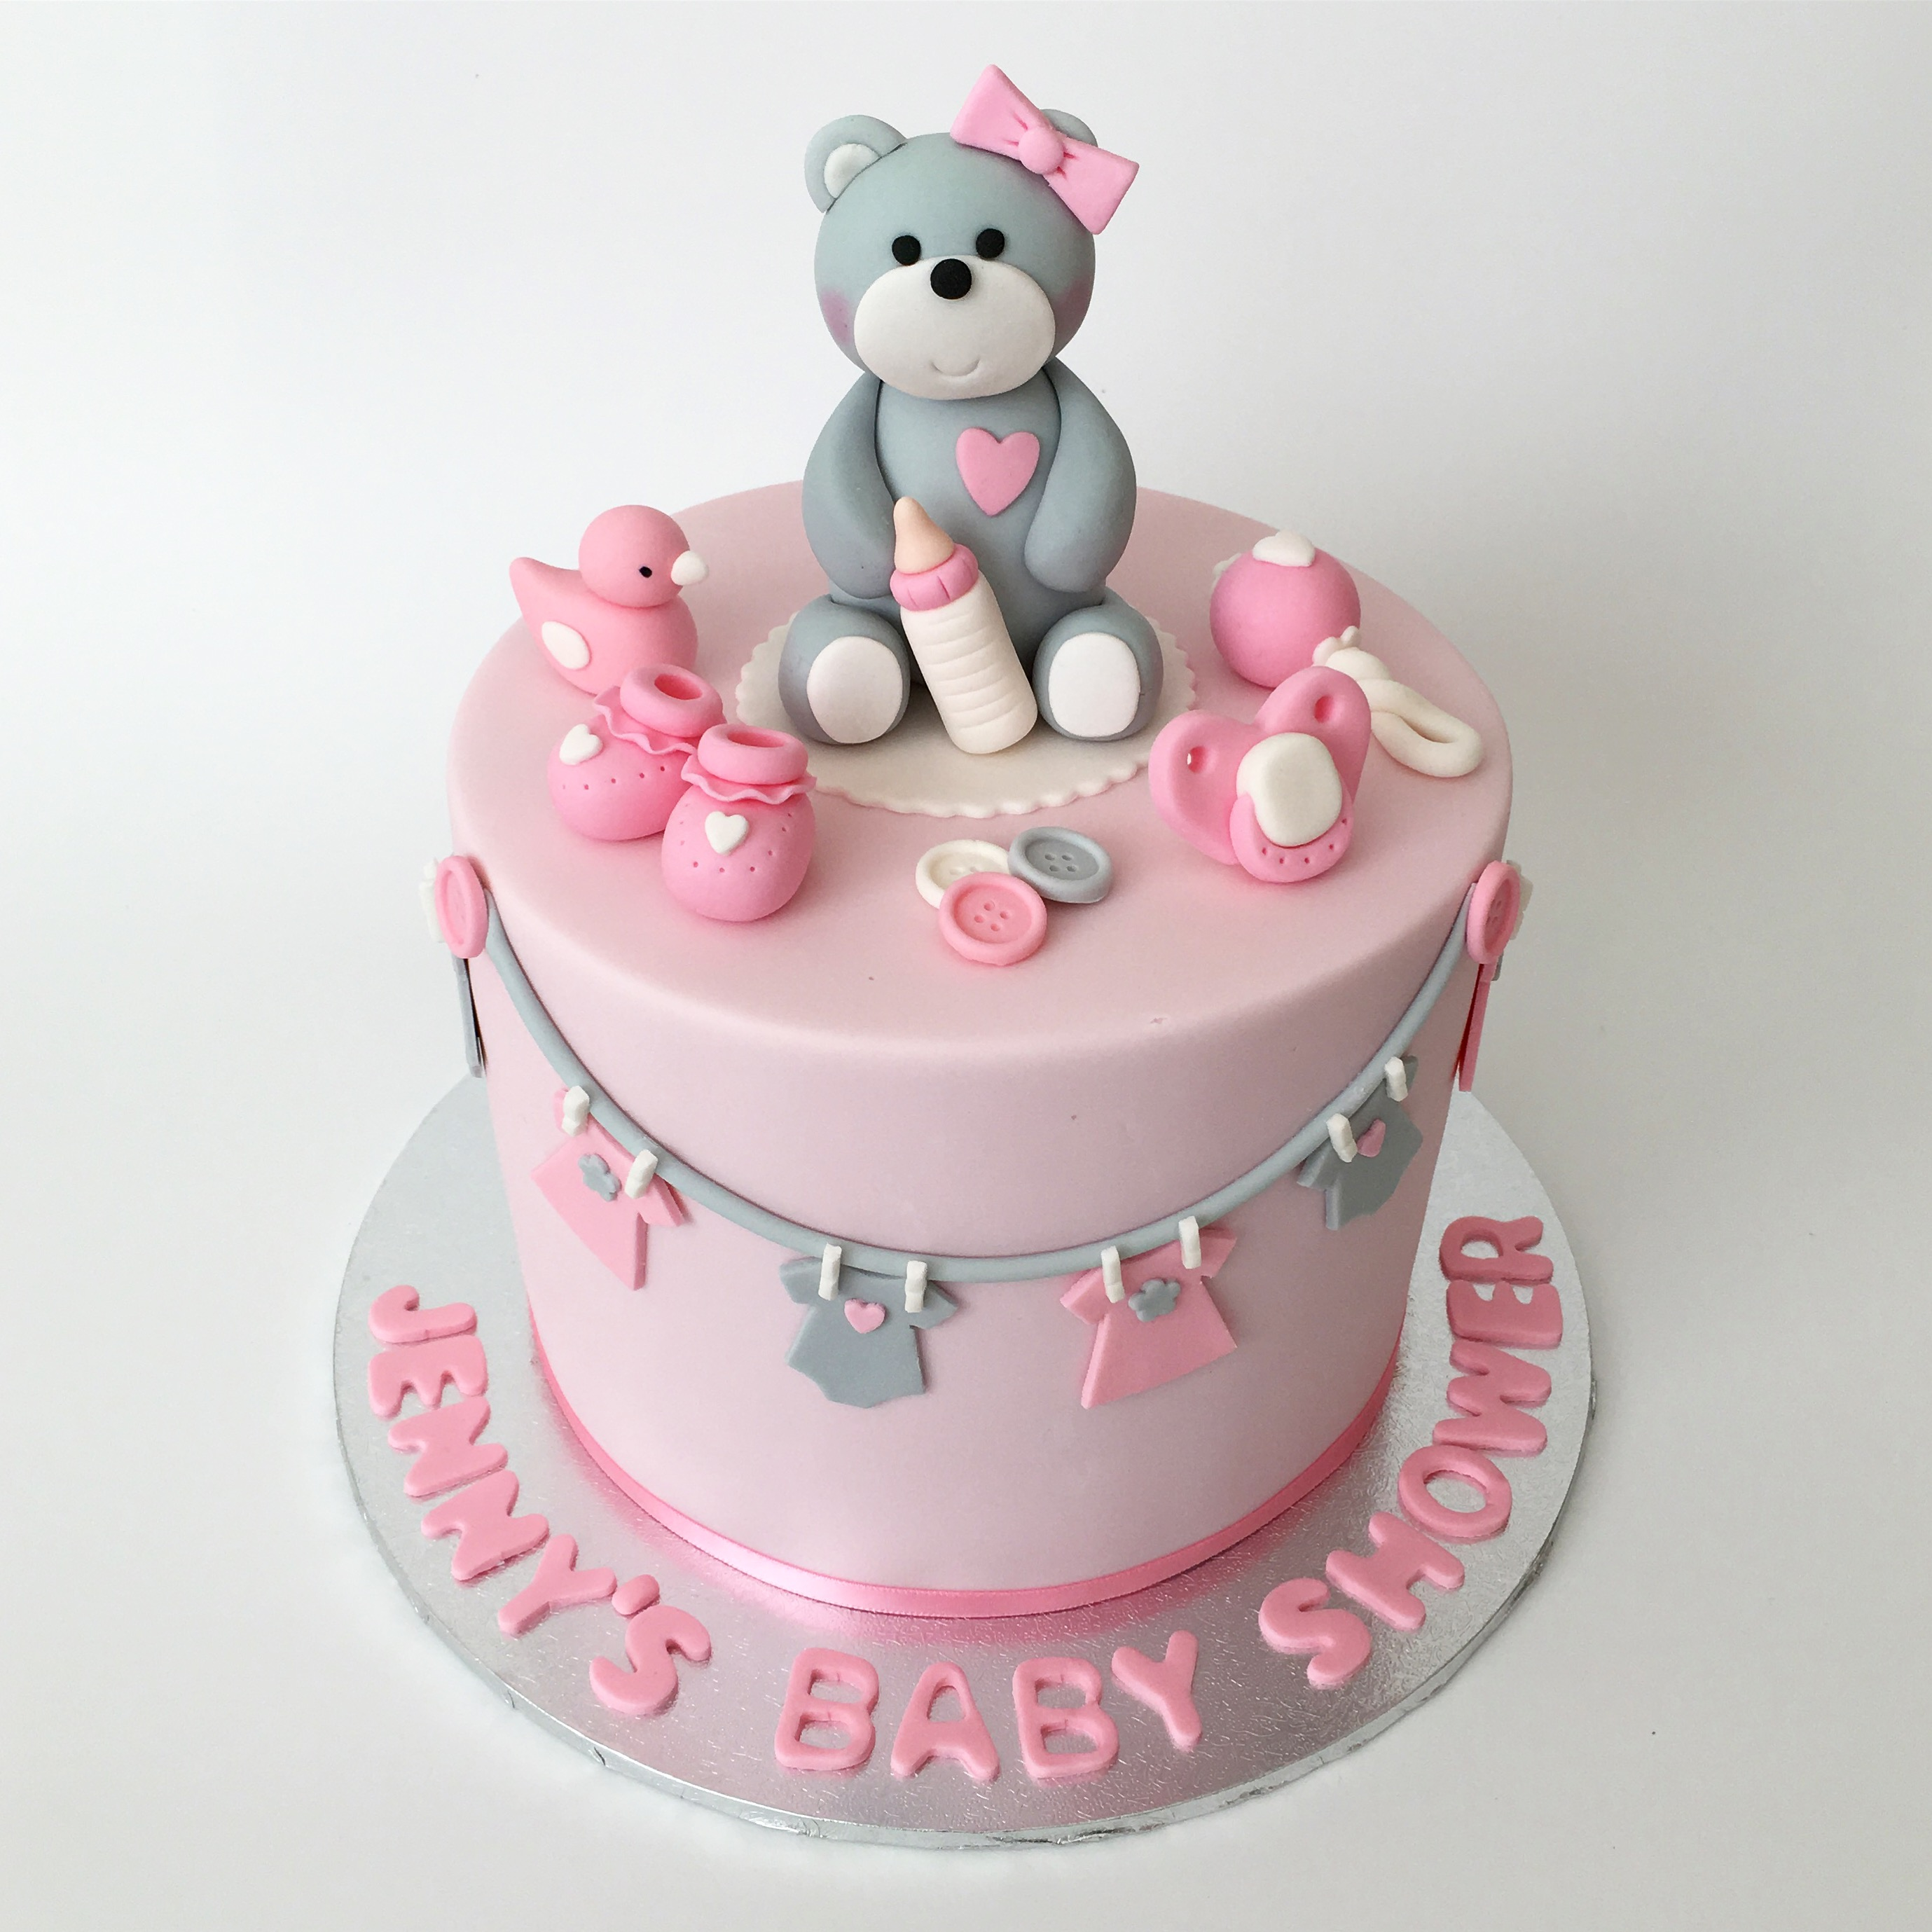 Pink baby shower cake with teddy bear topper